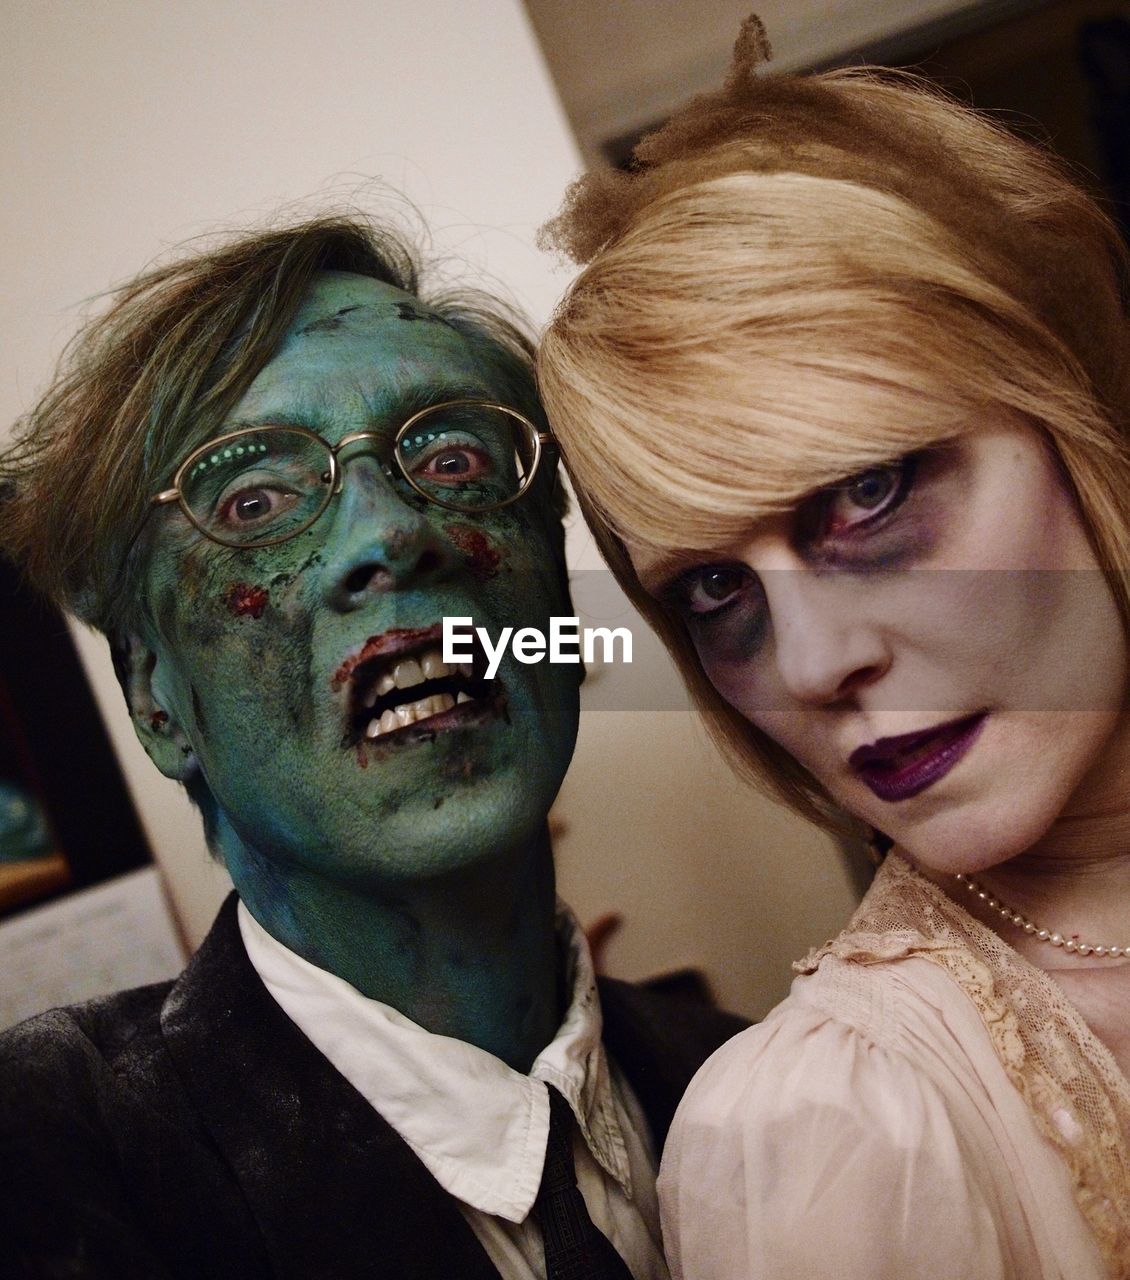 Close-Up Portrait Of Spooky Couple During Halloween